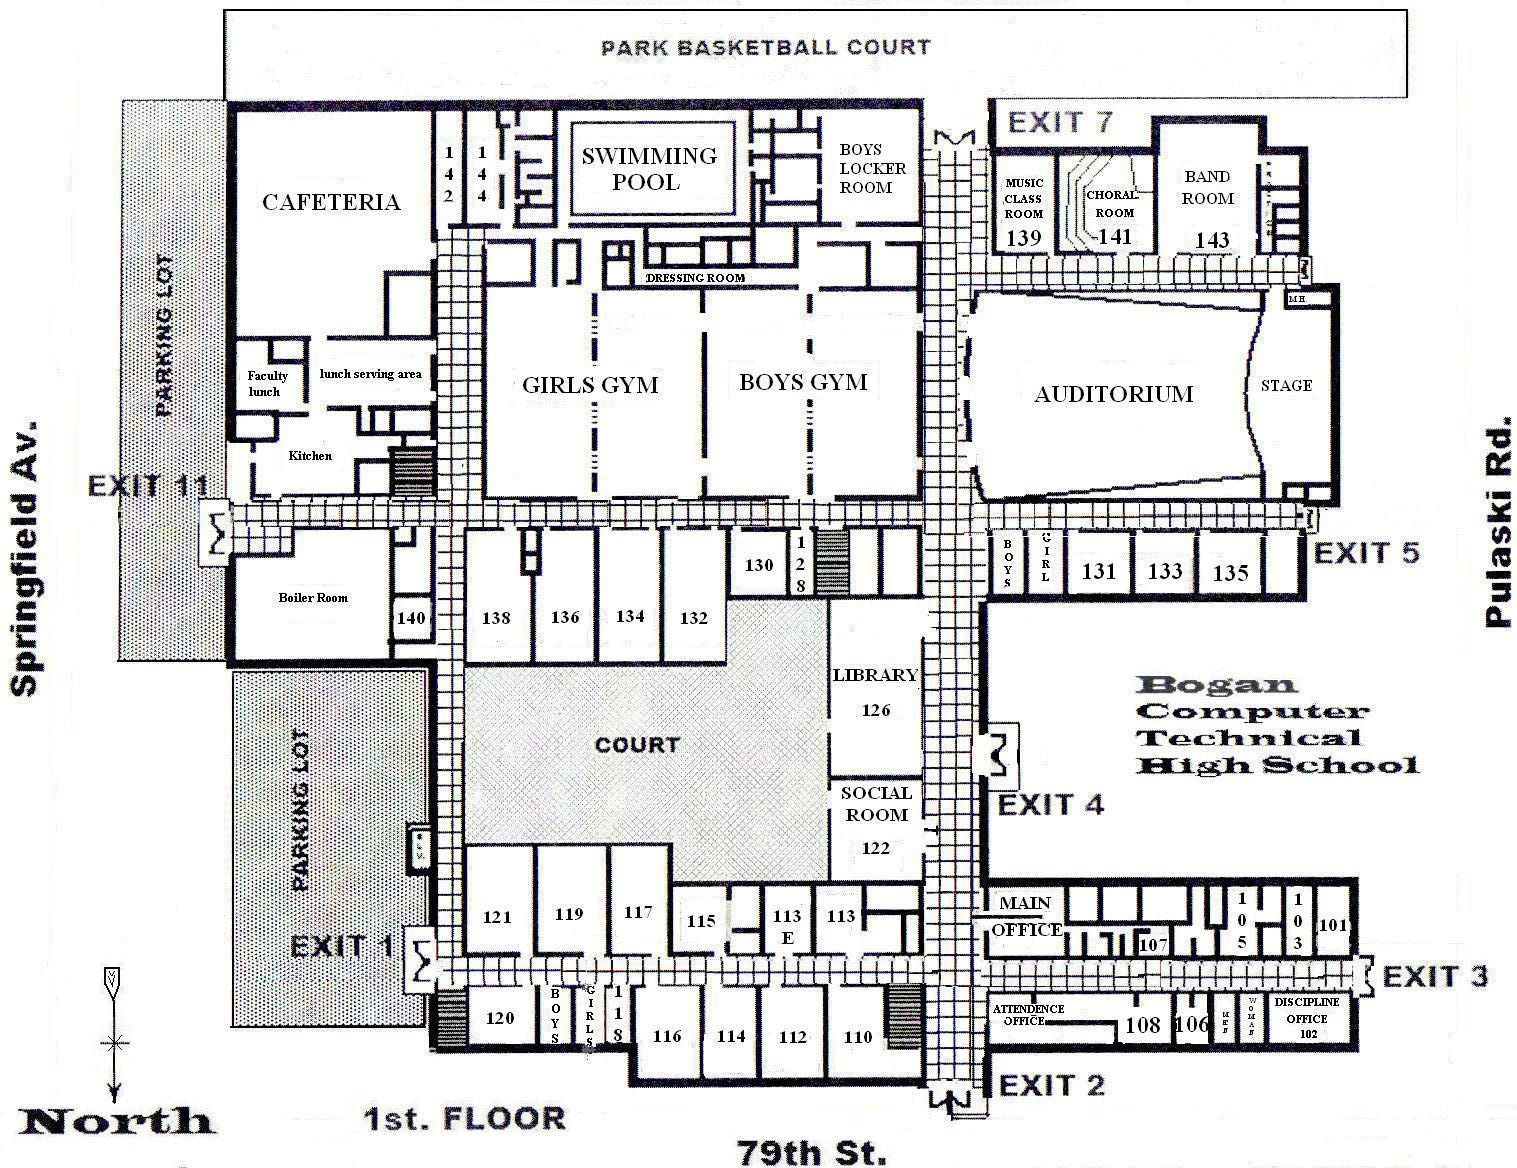 School building plans and designs atherton high school for Building plans and designs